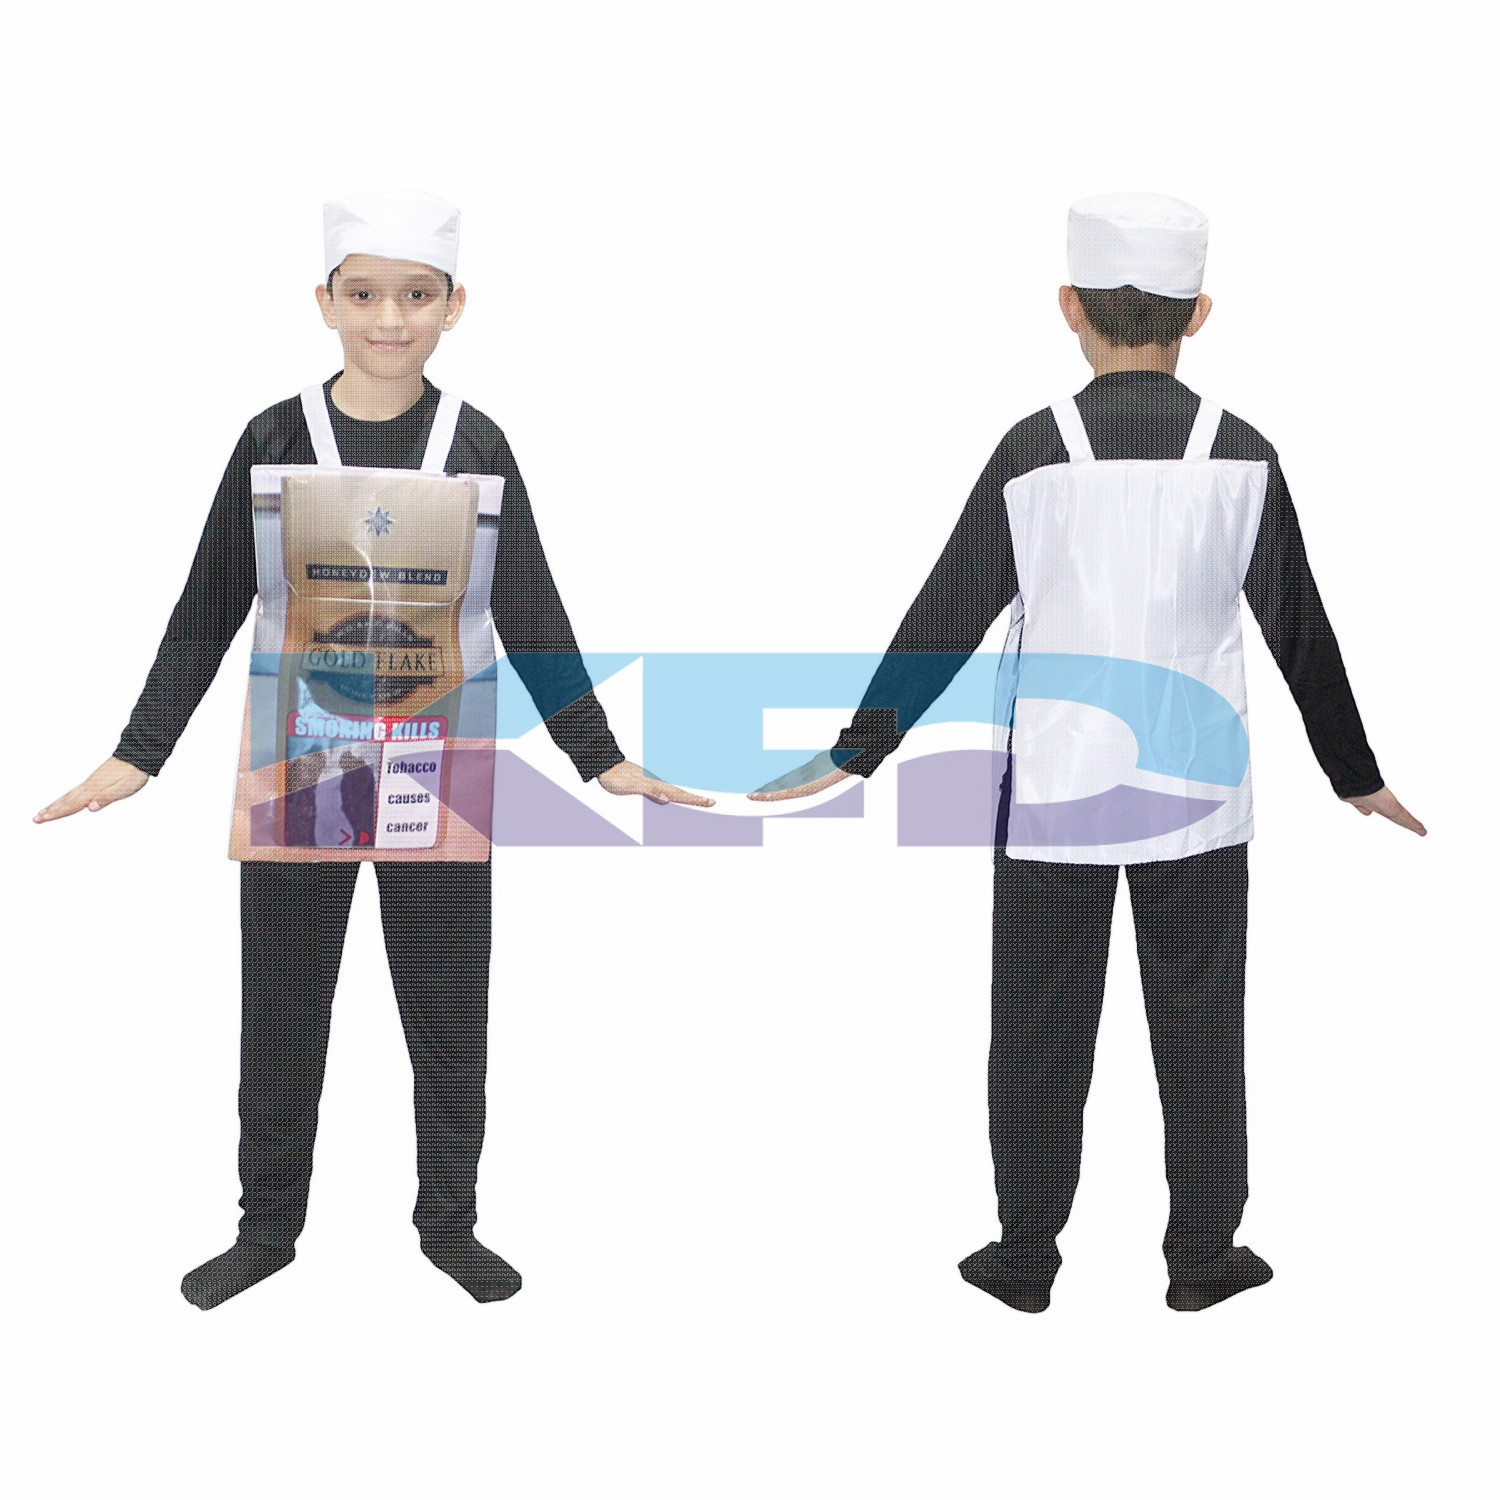 Smoking Cigarette Costume For Kids/Cigarette Fag Packet Novelty Funny Fancy Dress Costume/tobacco cigarette/Object Fancy Dress For Kids/For Kids Annual function/Theme Party/Competition/Stage Shows/Birthday Party Dress